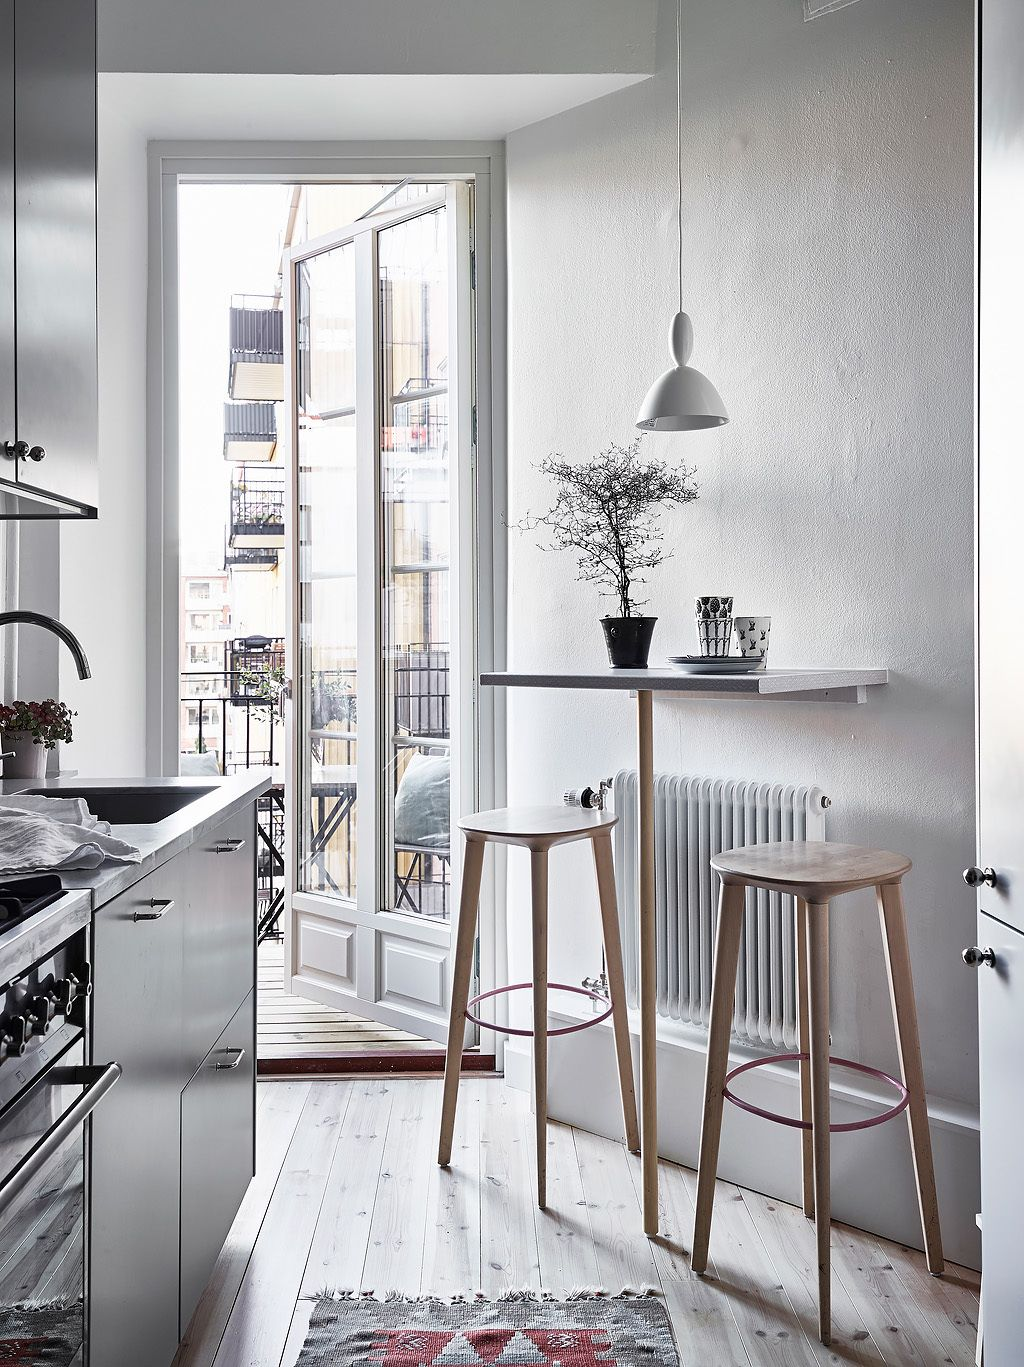 Tiny bar table for a small kitchen | INTERIORS | Scandi cool ...